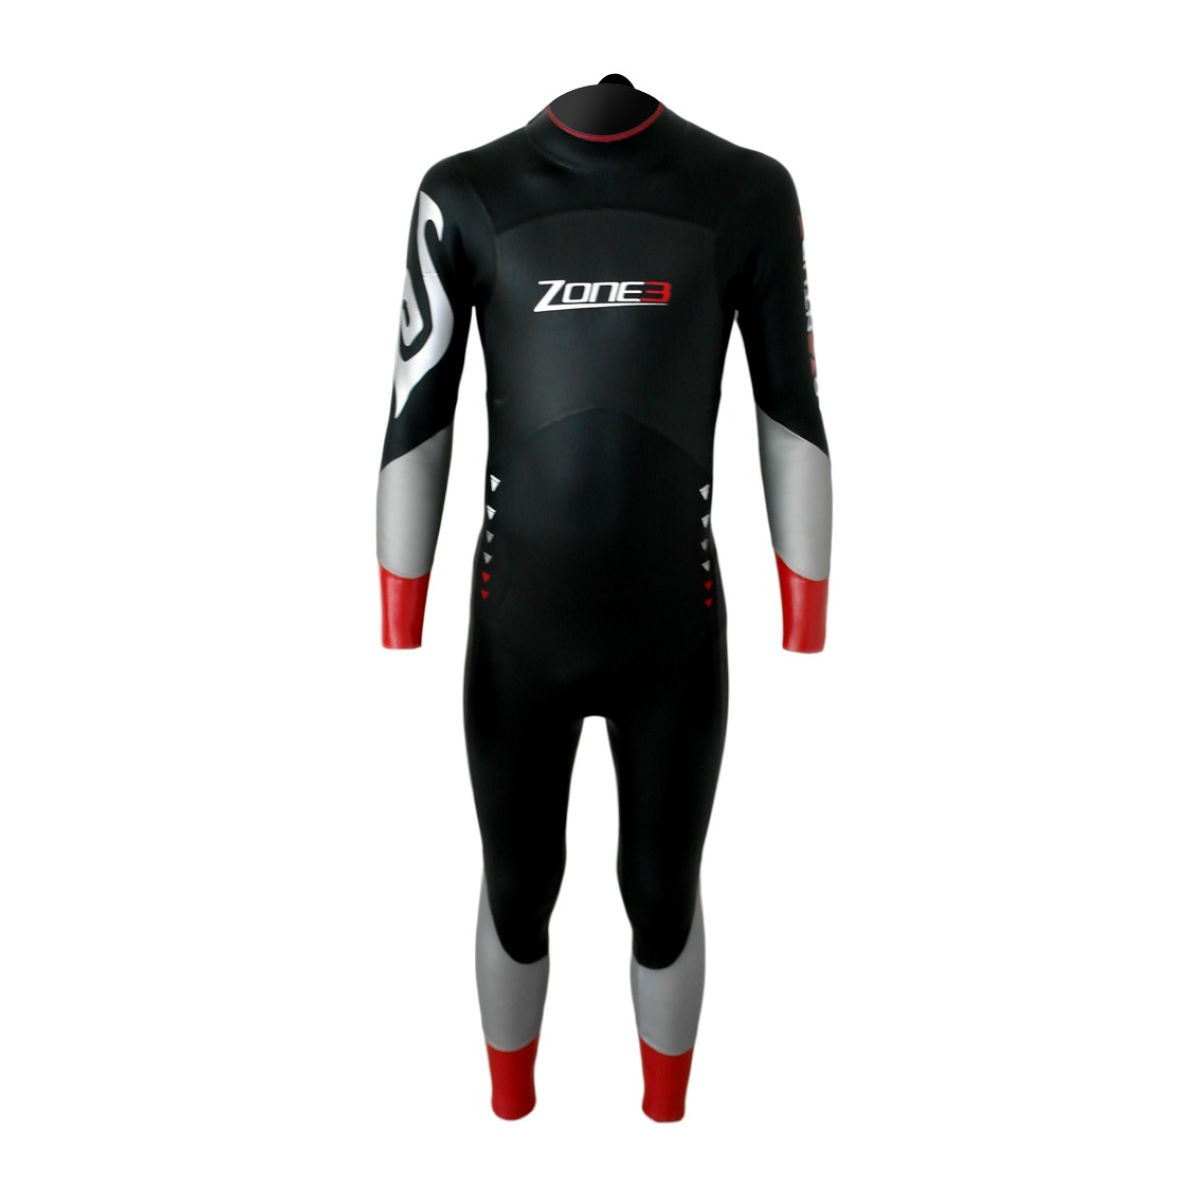 Zone3 Kids Adventure Tri Wetsuit with upgrade offer